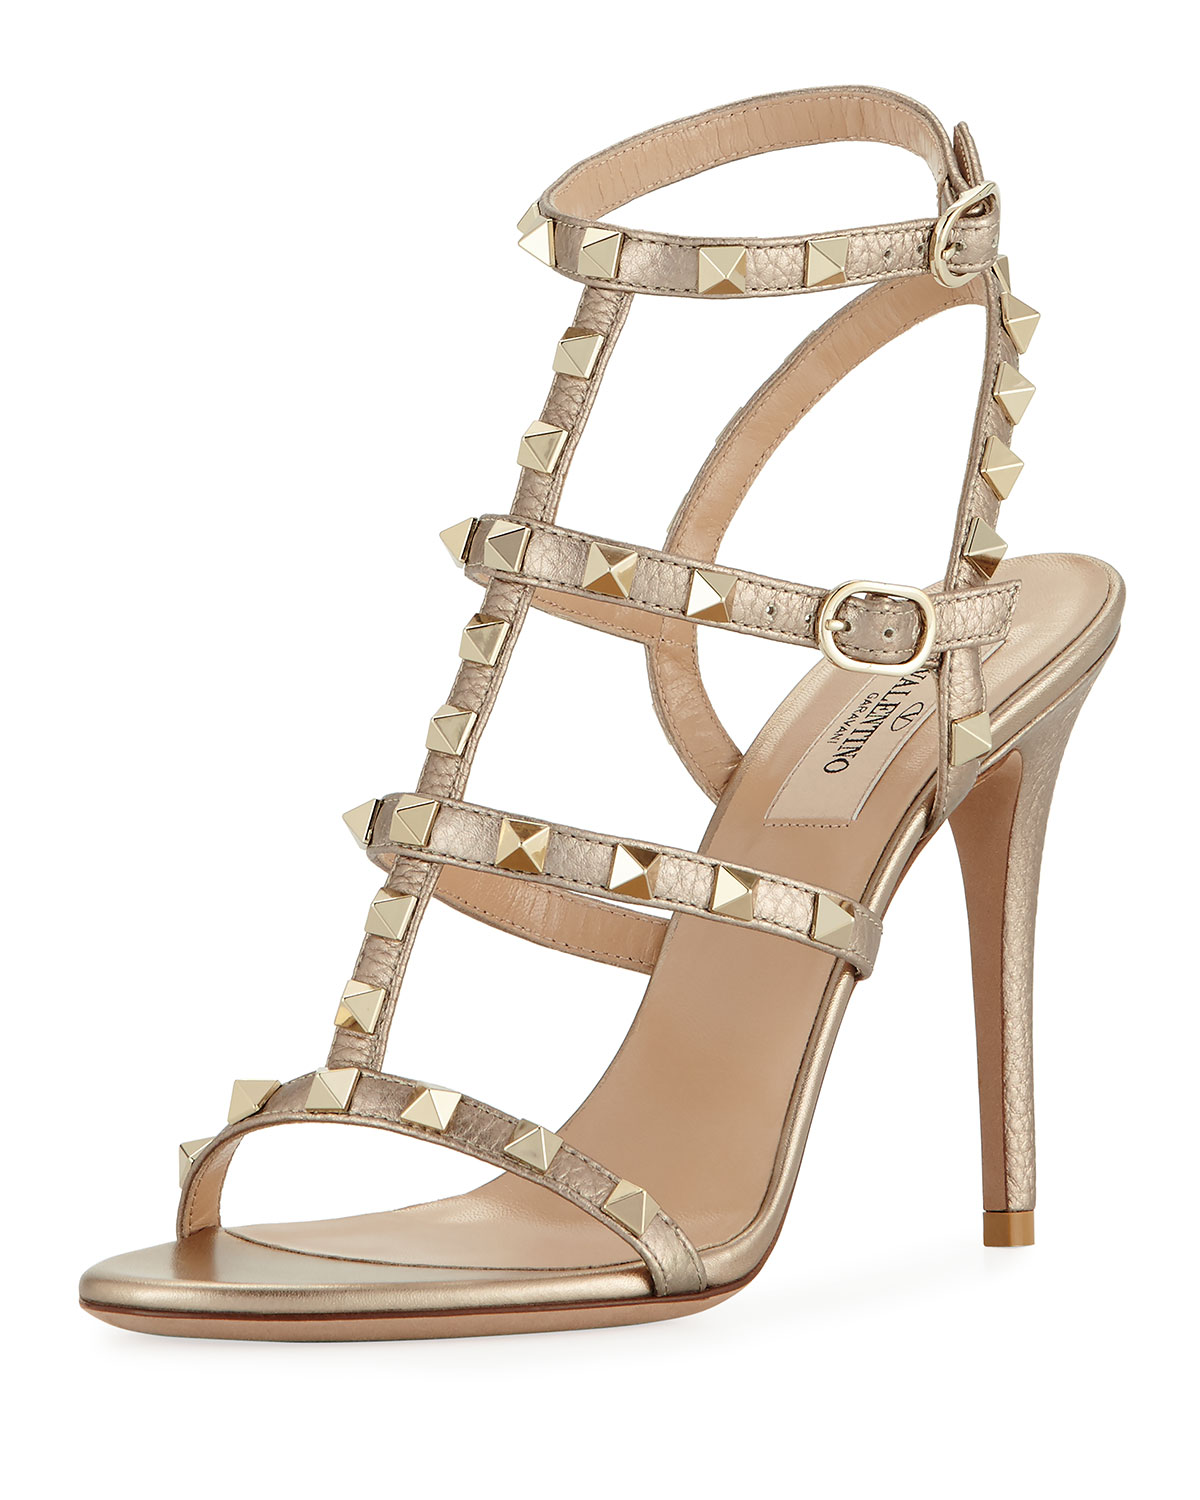 shoebaloo garavani leather nl stud sandals valentino nude stiletto women rockstud rock